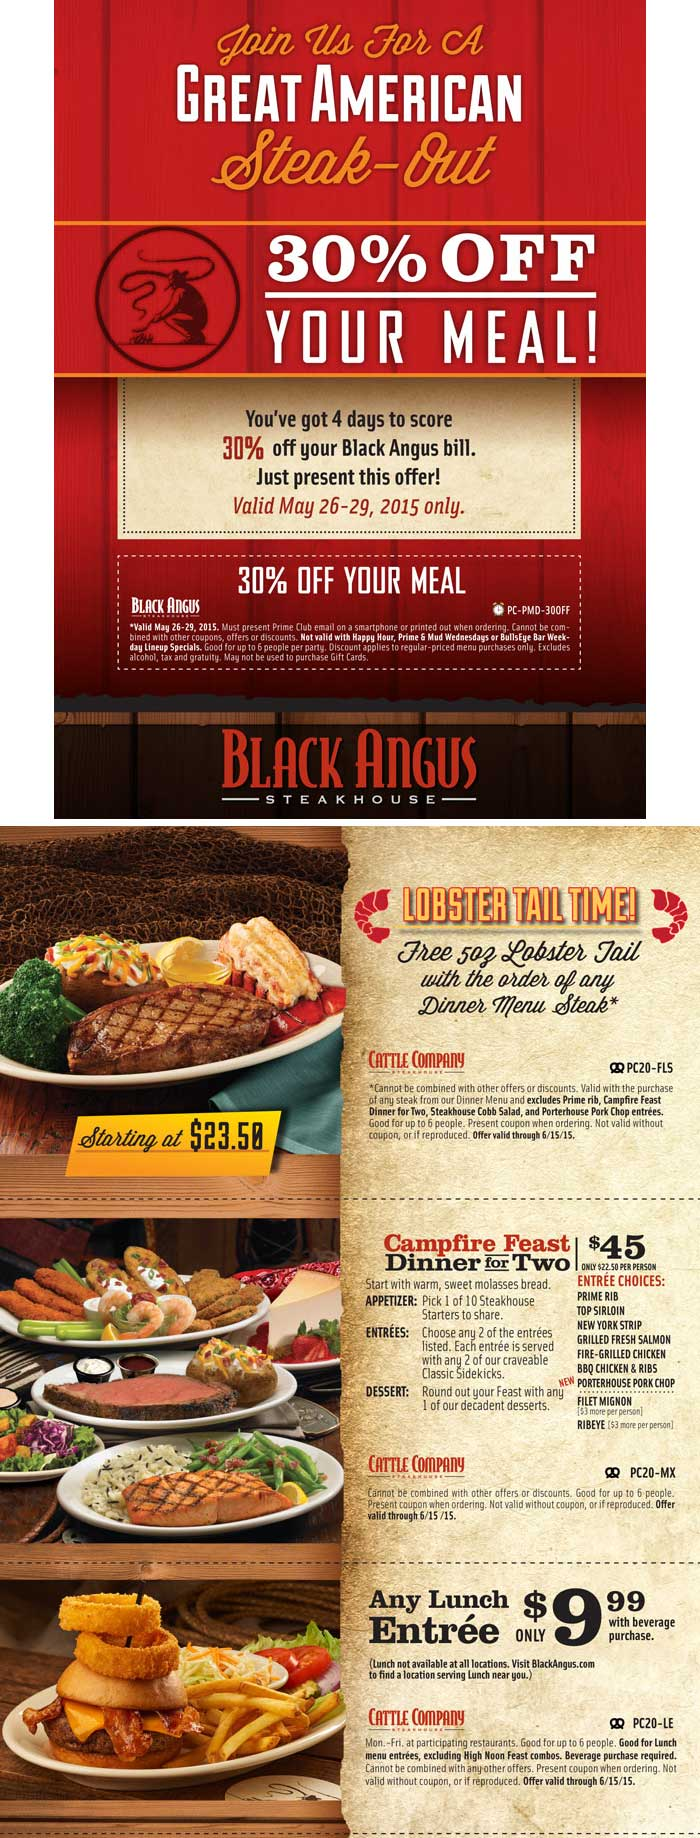 Black Angus Coupon October 2016 Free lobster with your steak, 30% off & more at Black Angus